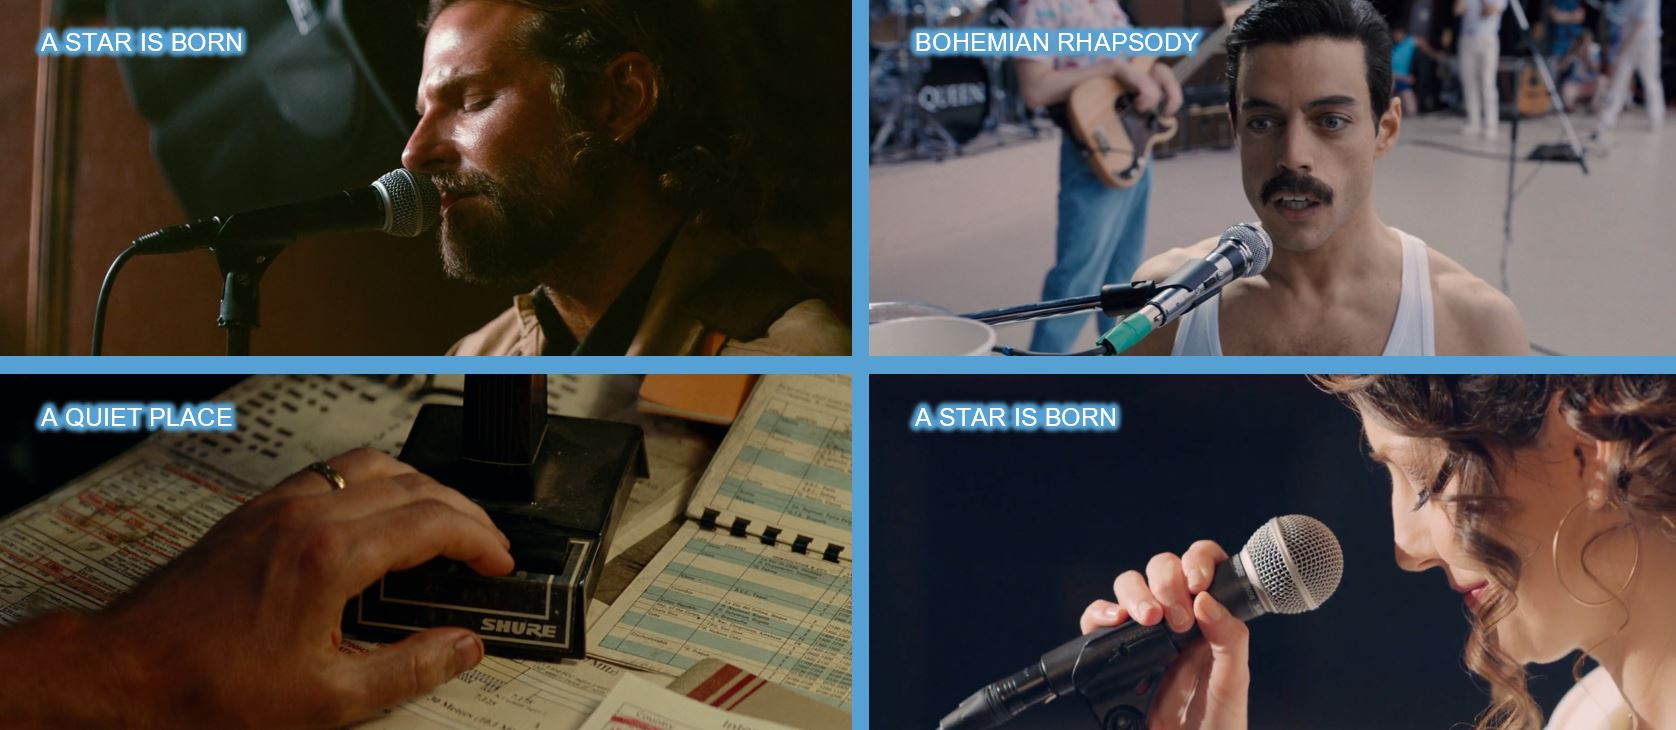 shure concave brand tracking product placement top 10 brands in 2018 movies branded entertainment brand integration bohemian rhapsody a star is born a quiet place microphone